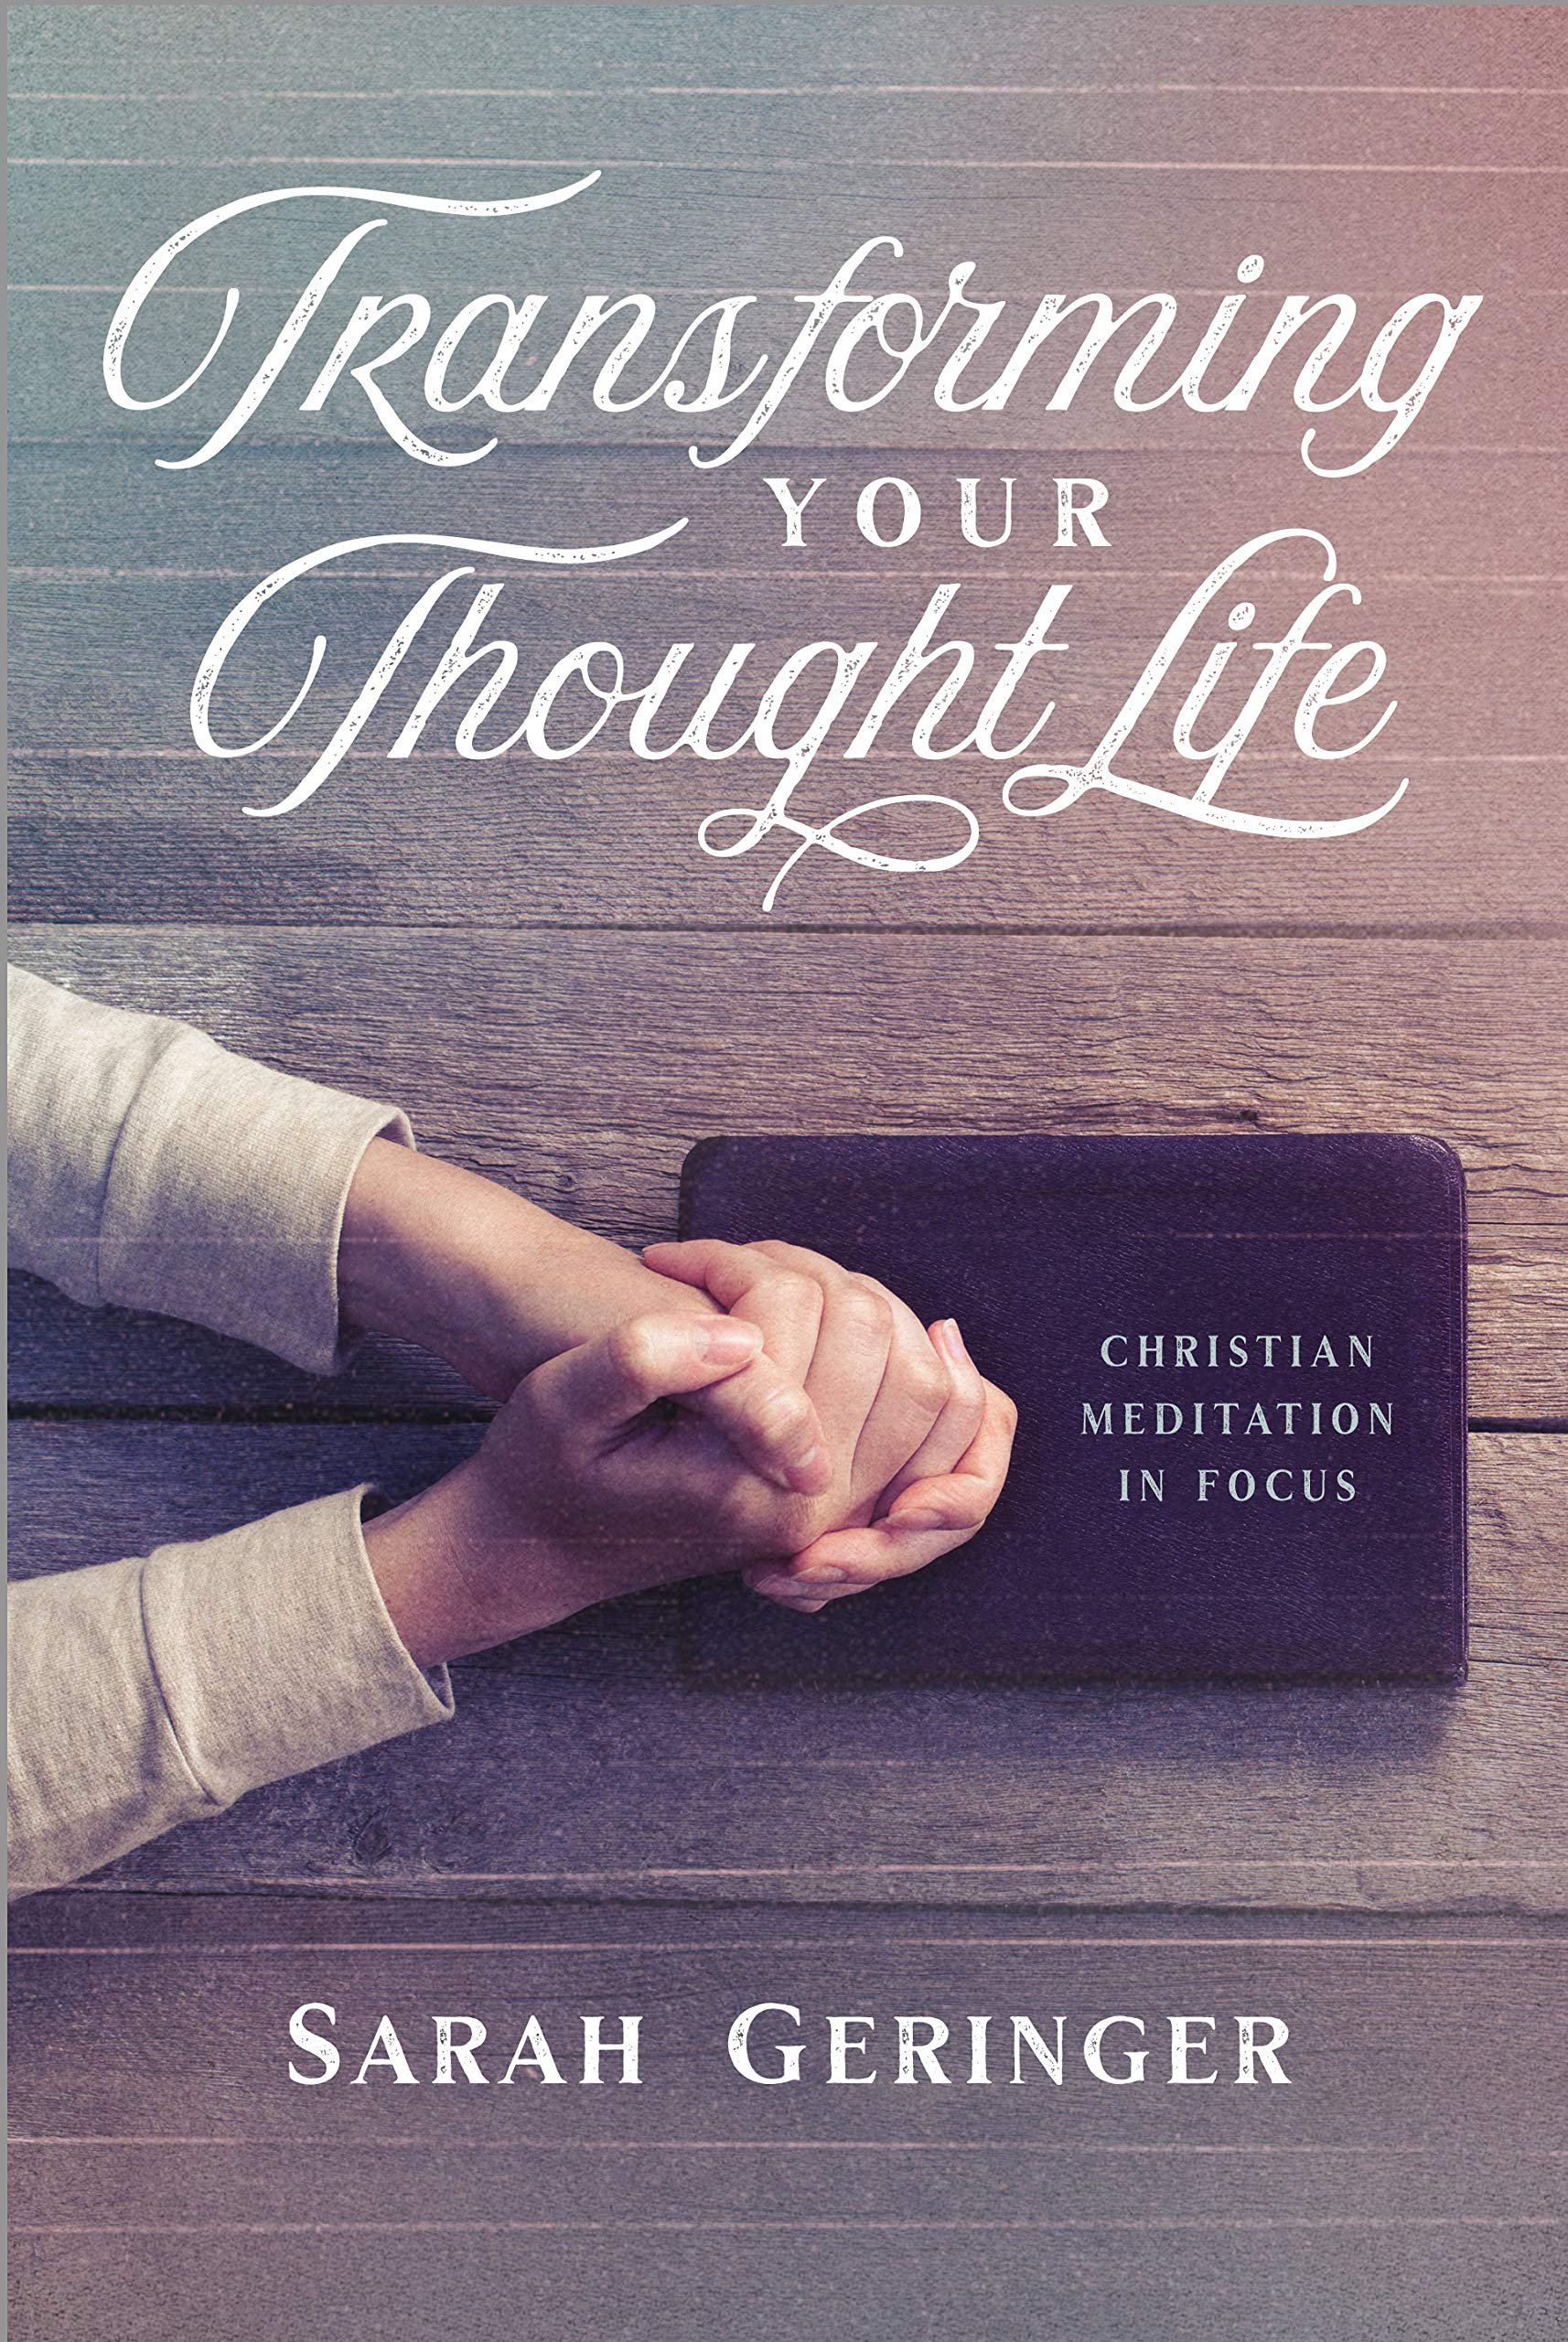 Transforming Your Thought Life Christian Meditation In Focus Sarah Geringer 9781684262106 Amazon Com Books